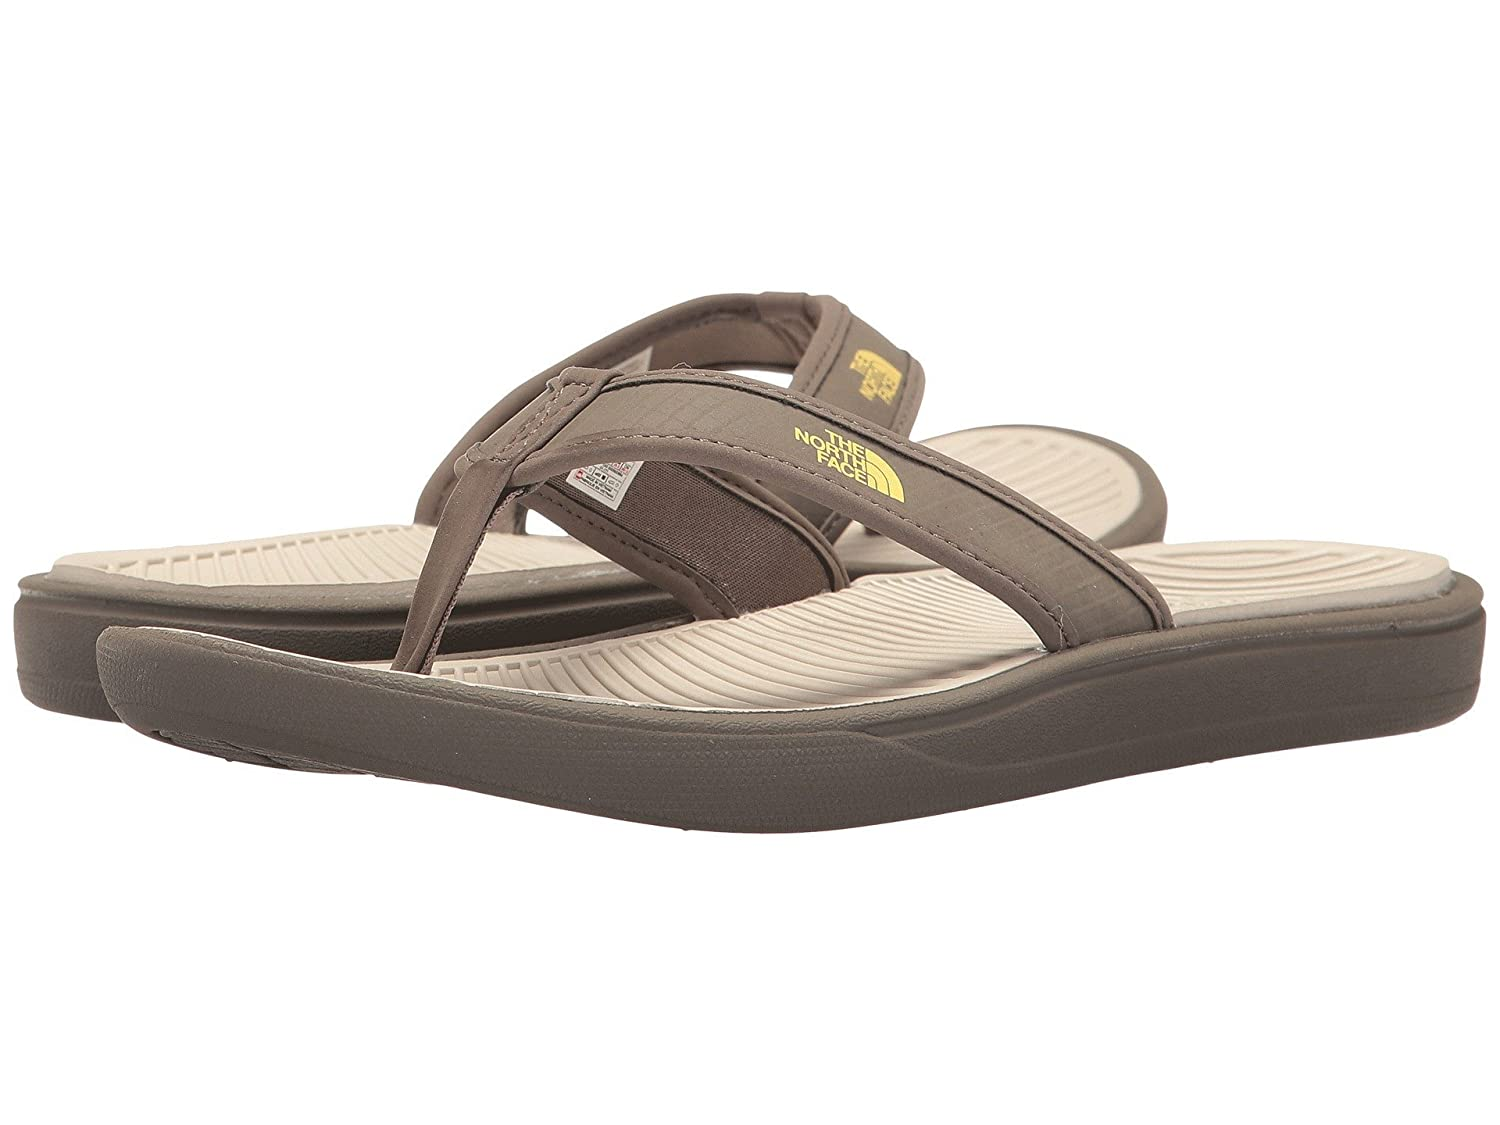 4185d367fb86 THE NORTH FACE Base Camp Lite Flip-Flop Women s Falcon Brown Rainy Day  Ivory Medium   6 D(M) US  Buy Online at Low Prices in India - Amazon.in